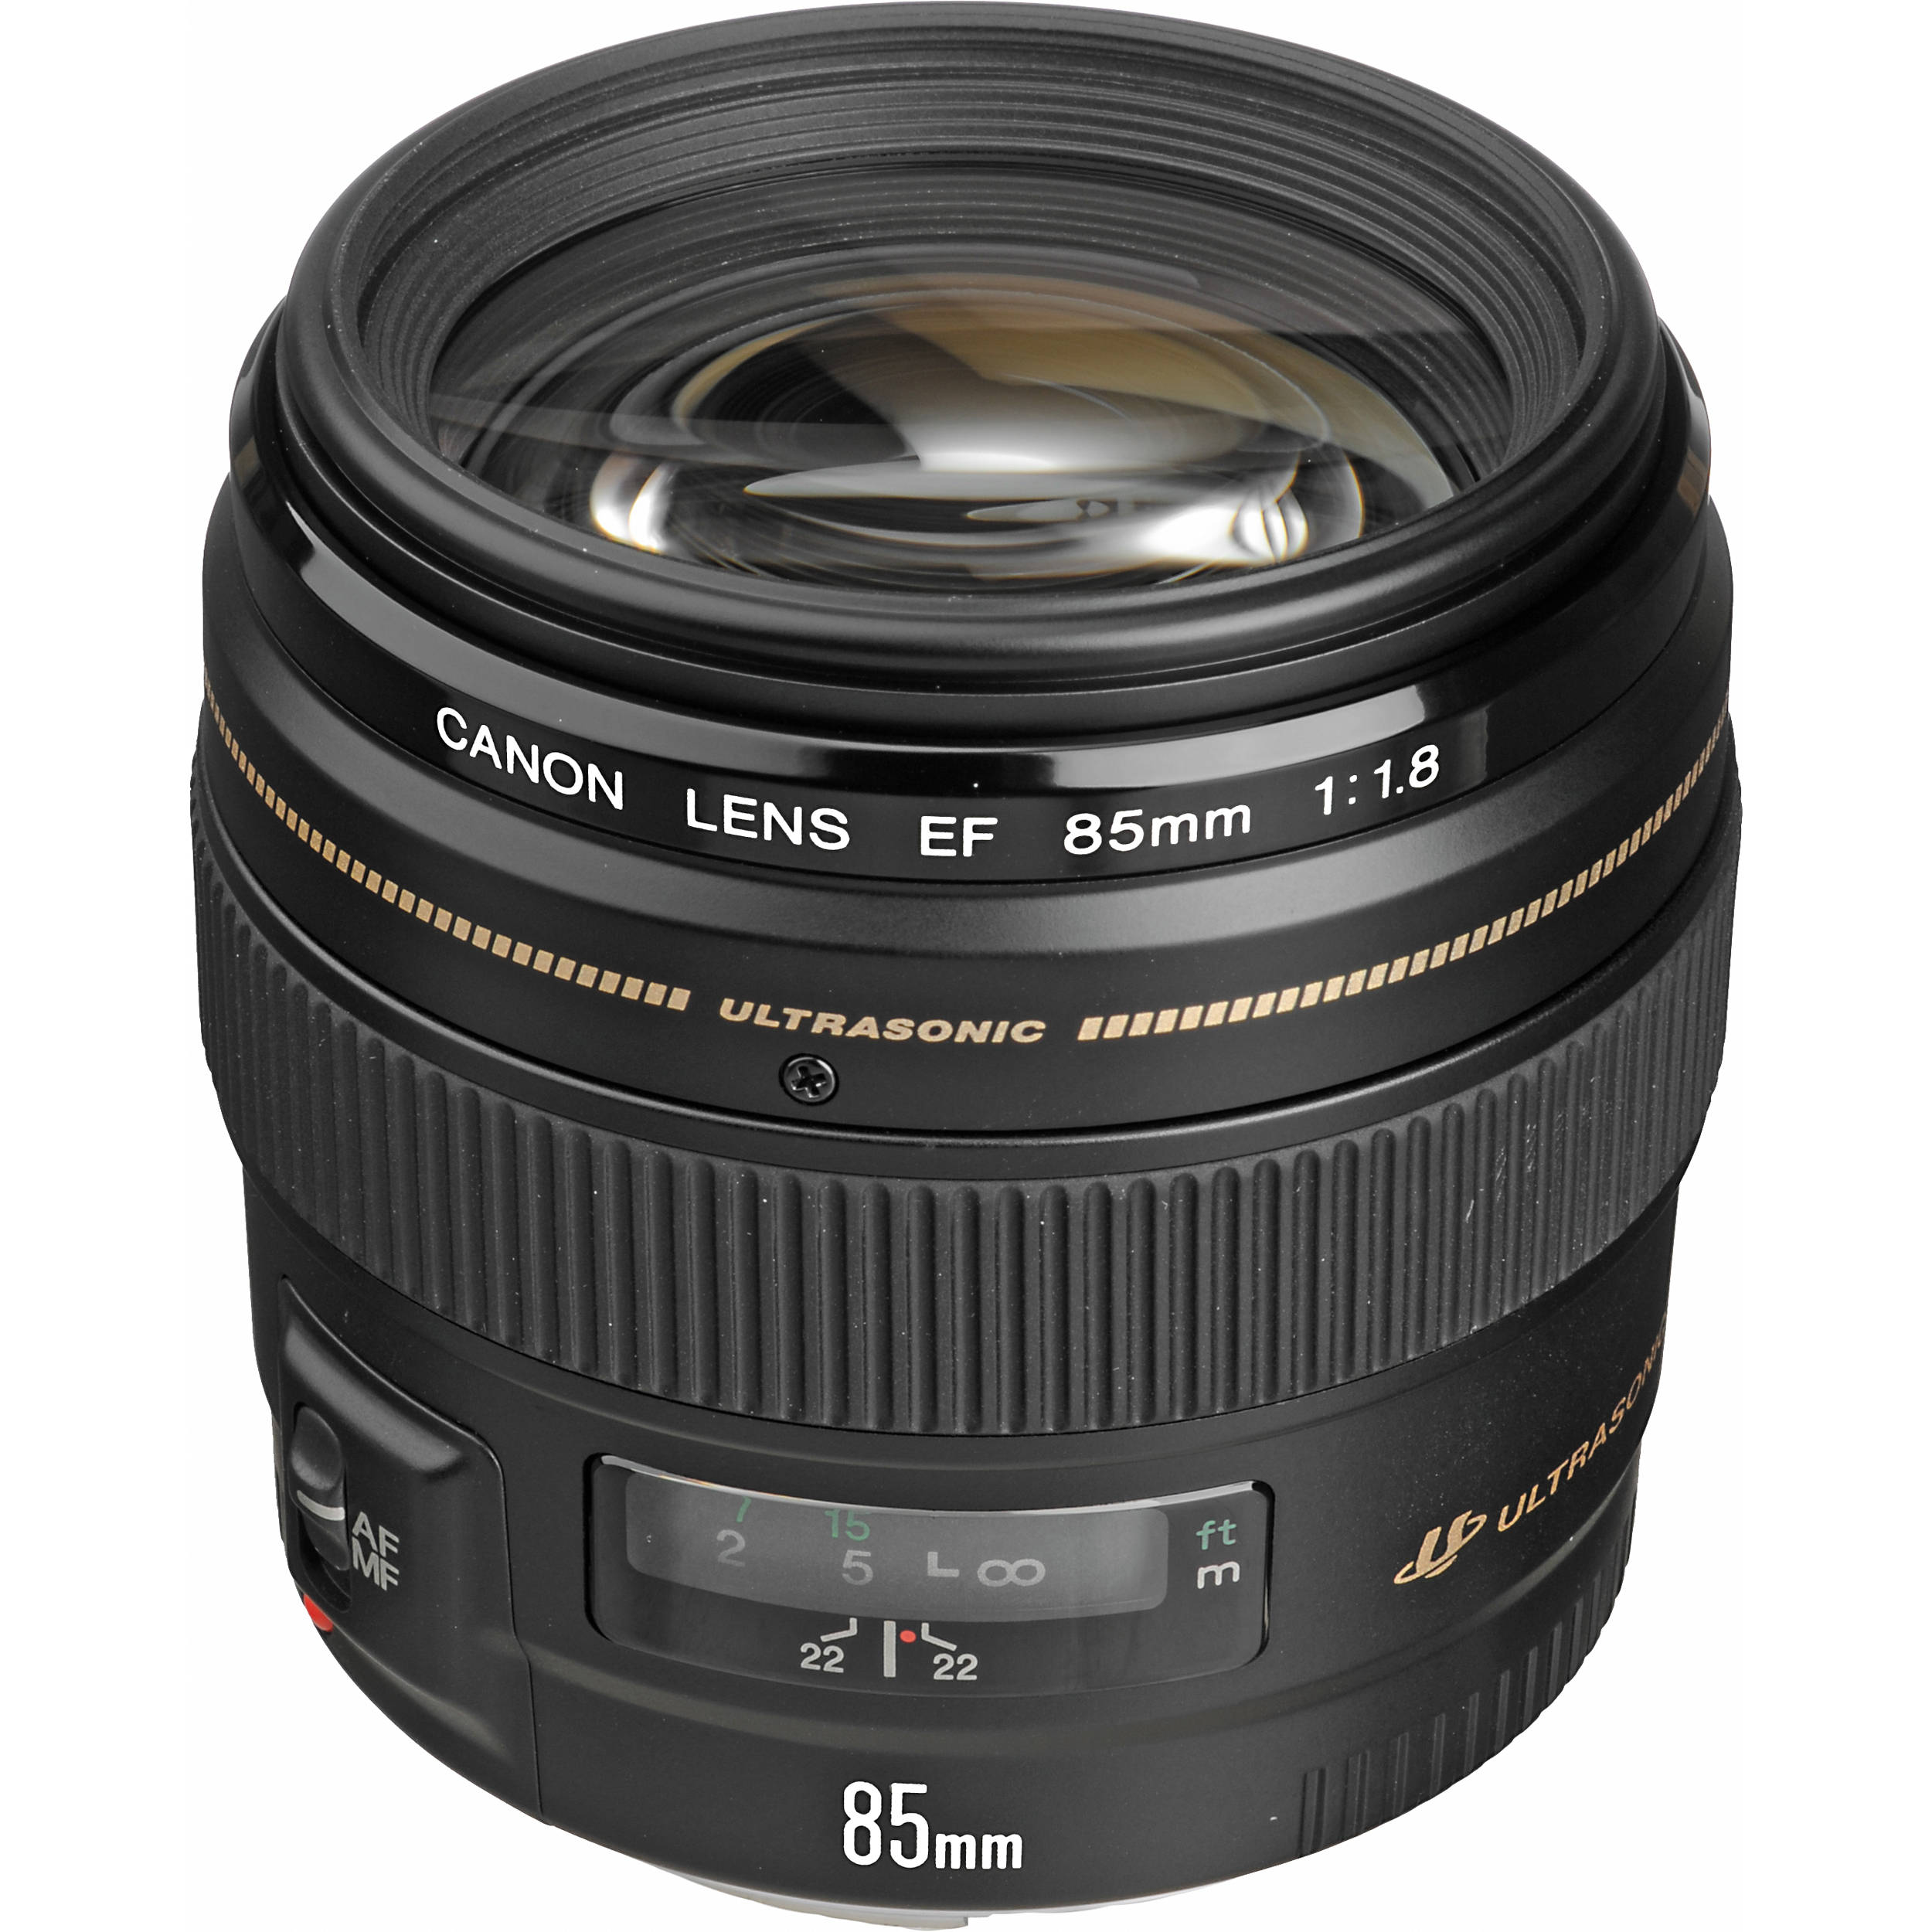 Image of Canon EF 85mm f/1.8 USM Lens